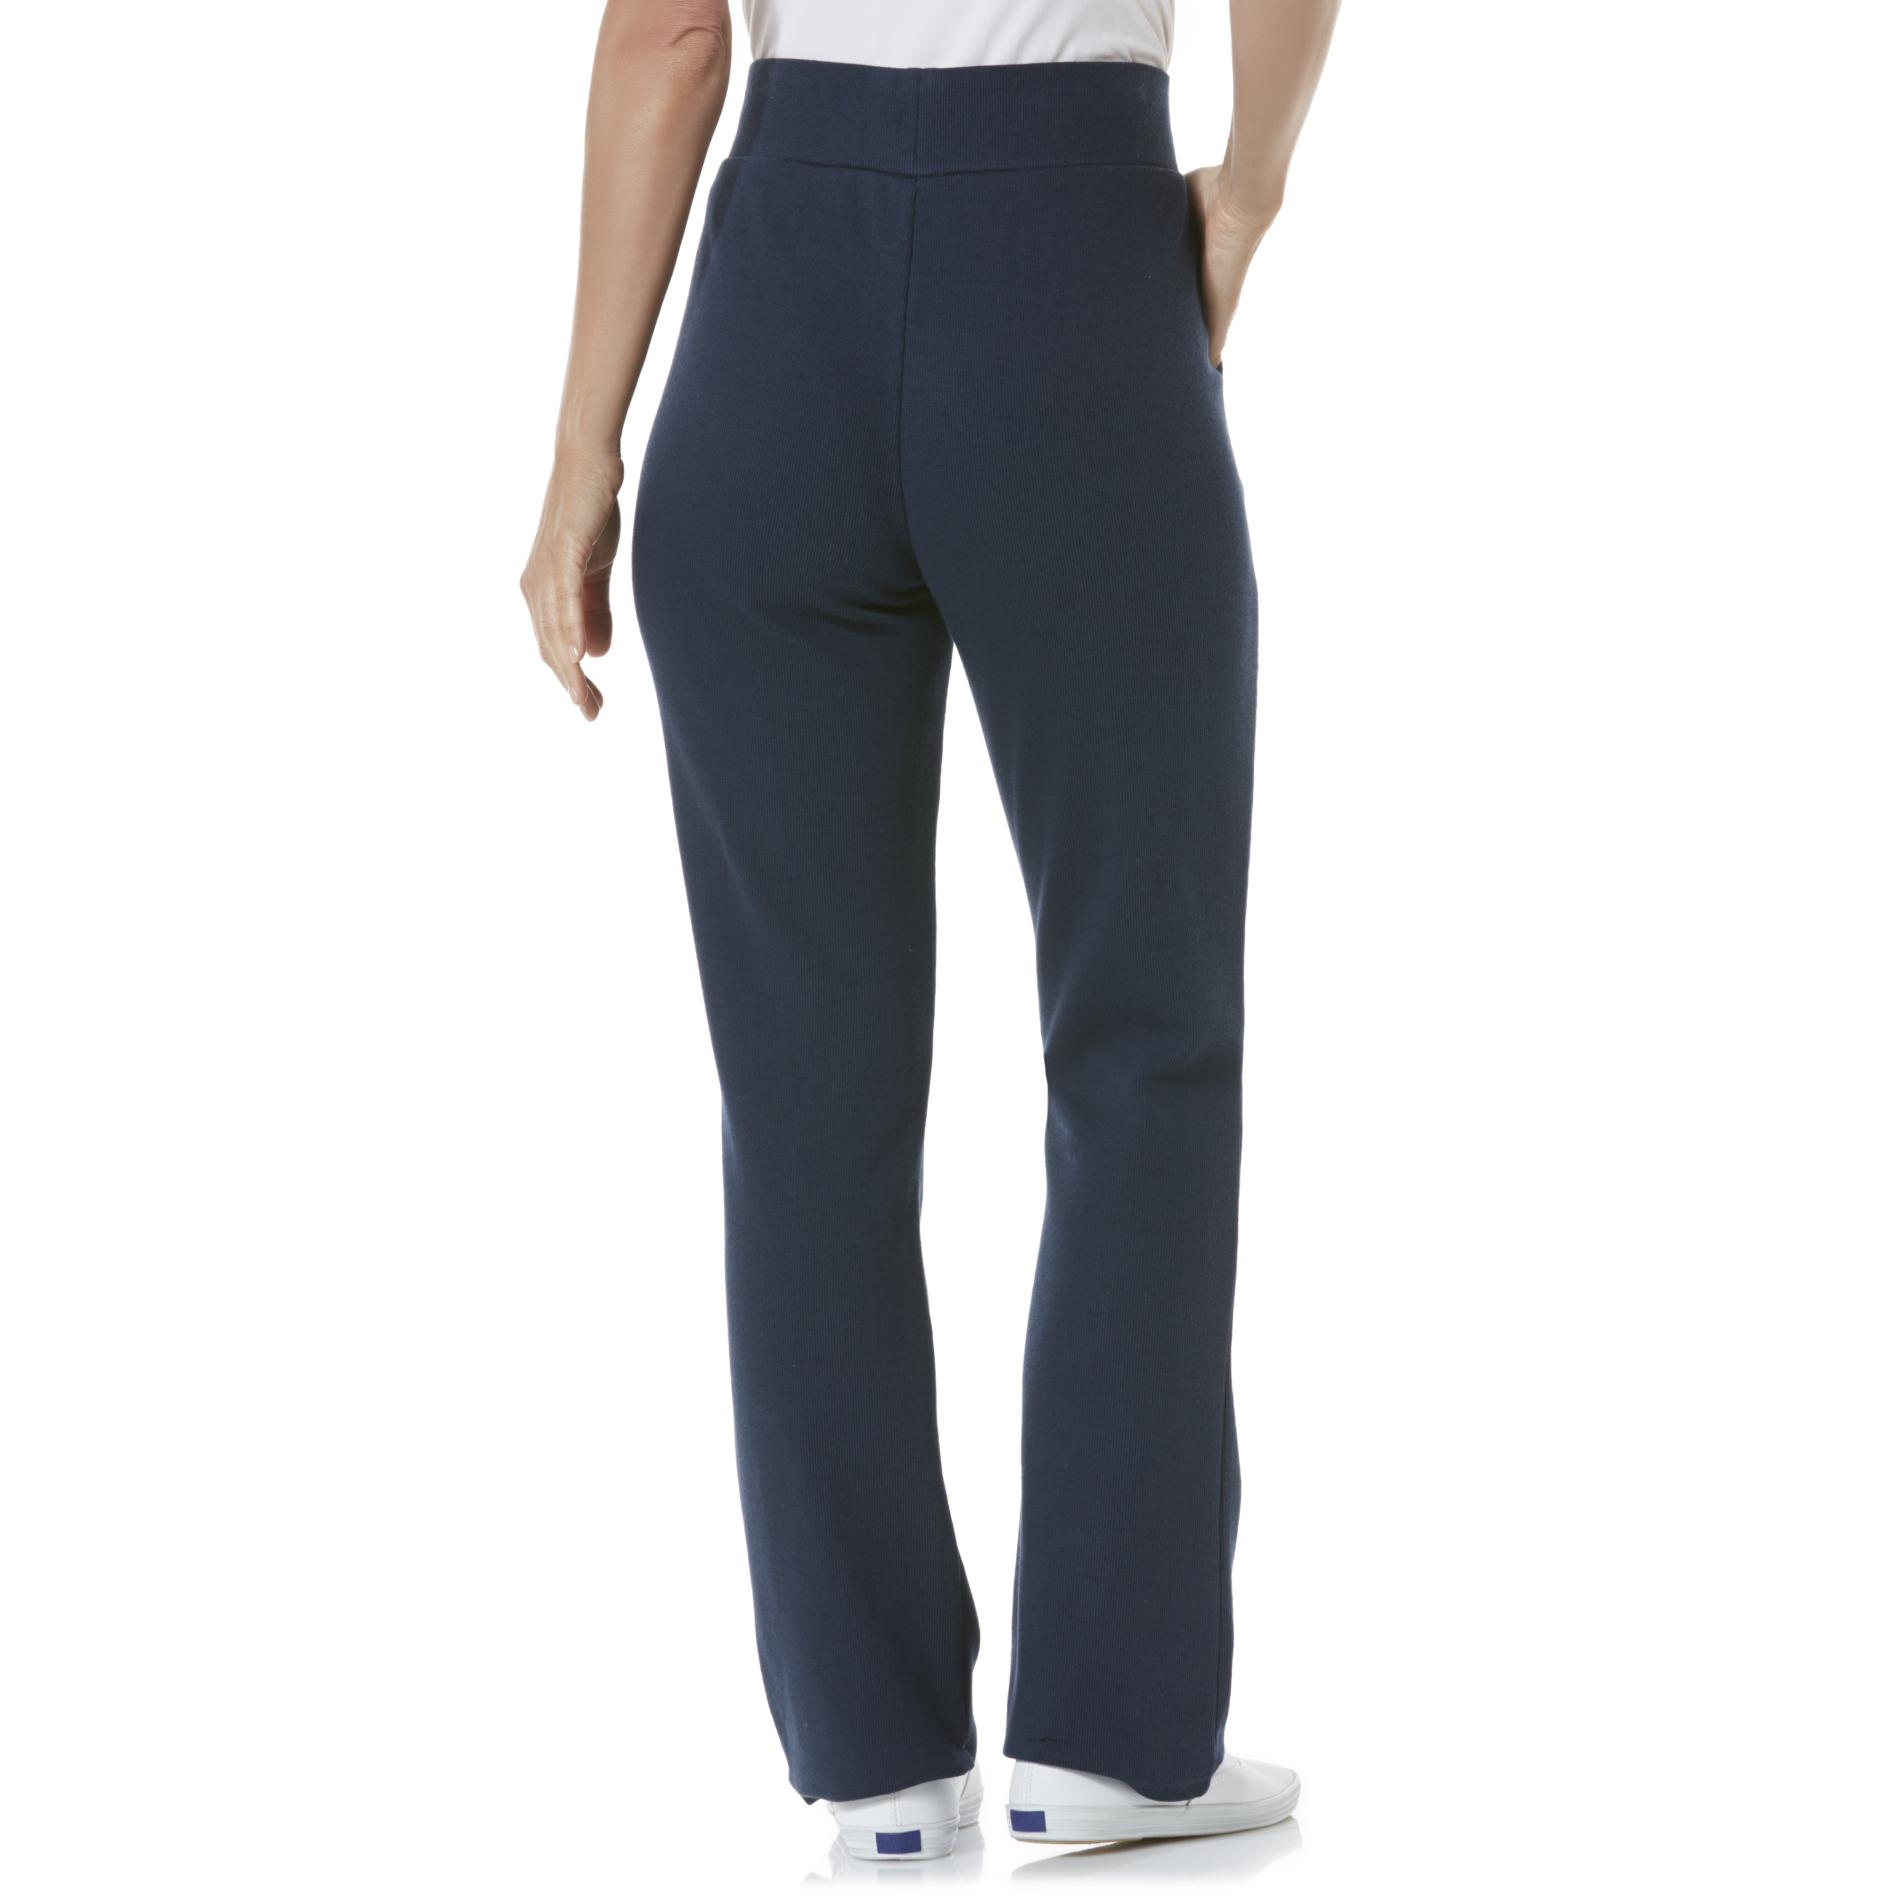 Laura Scott Women's Rib Knit Pants